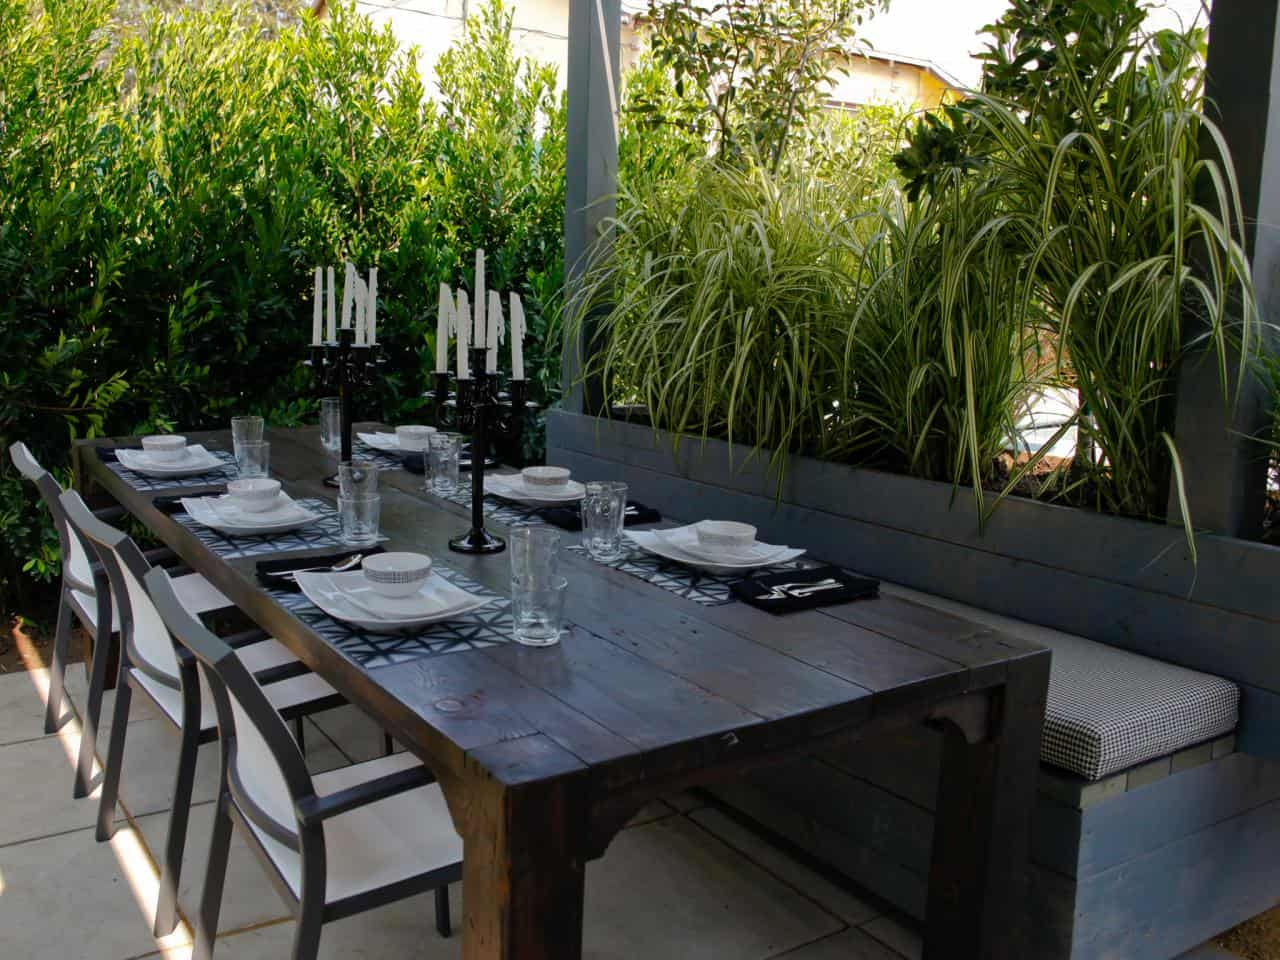 Chic And Charming Outdoor Eating Space Ideas